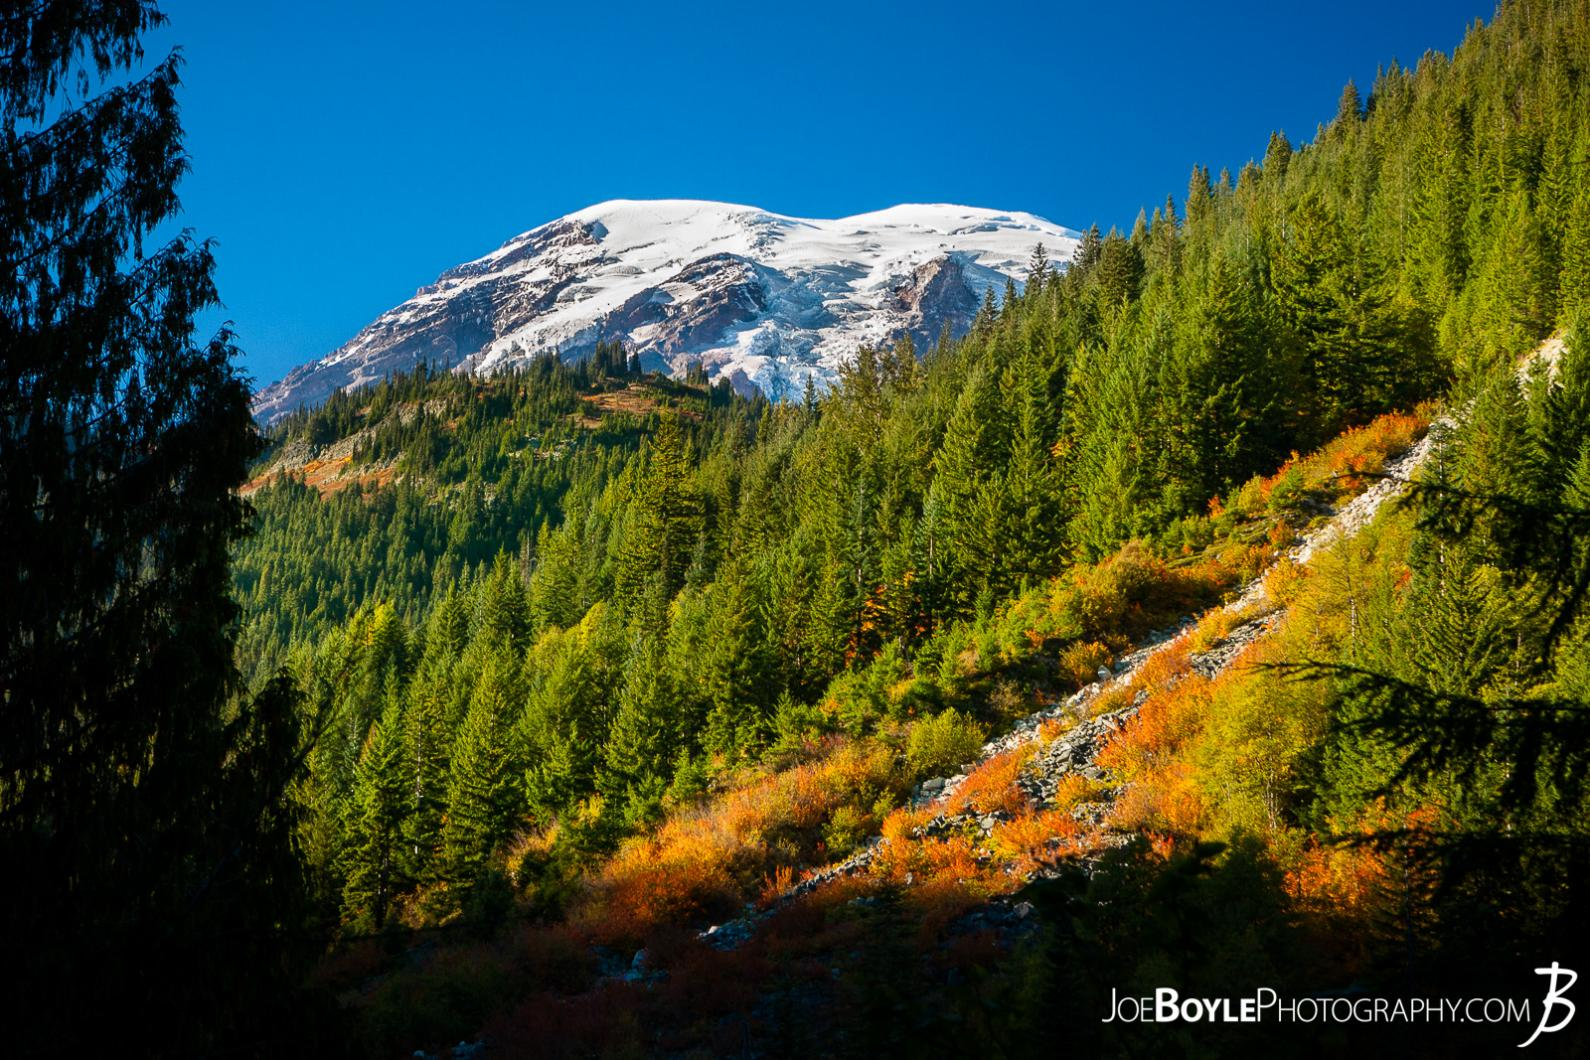 mount-rainier-on-the-wonderland-trail-en-route-to-paradise-river-campground